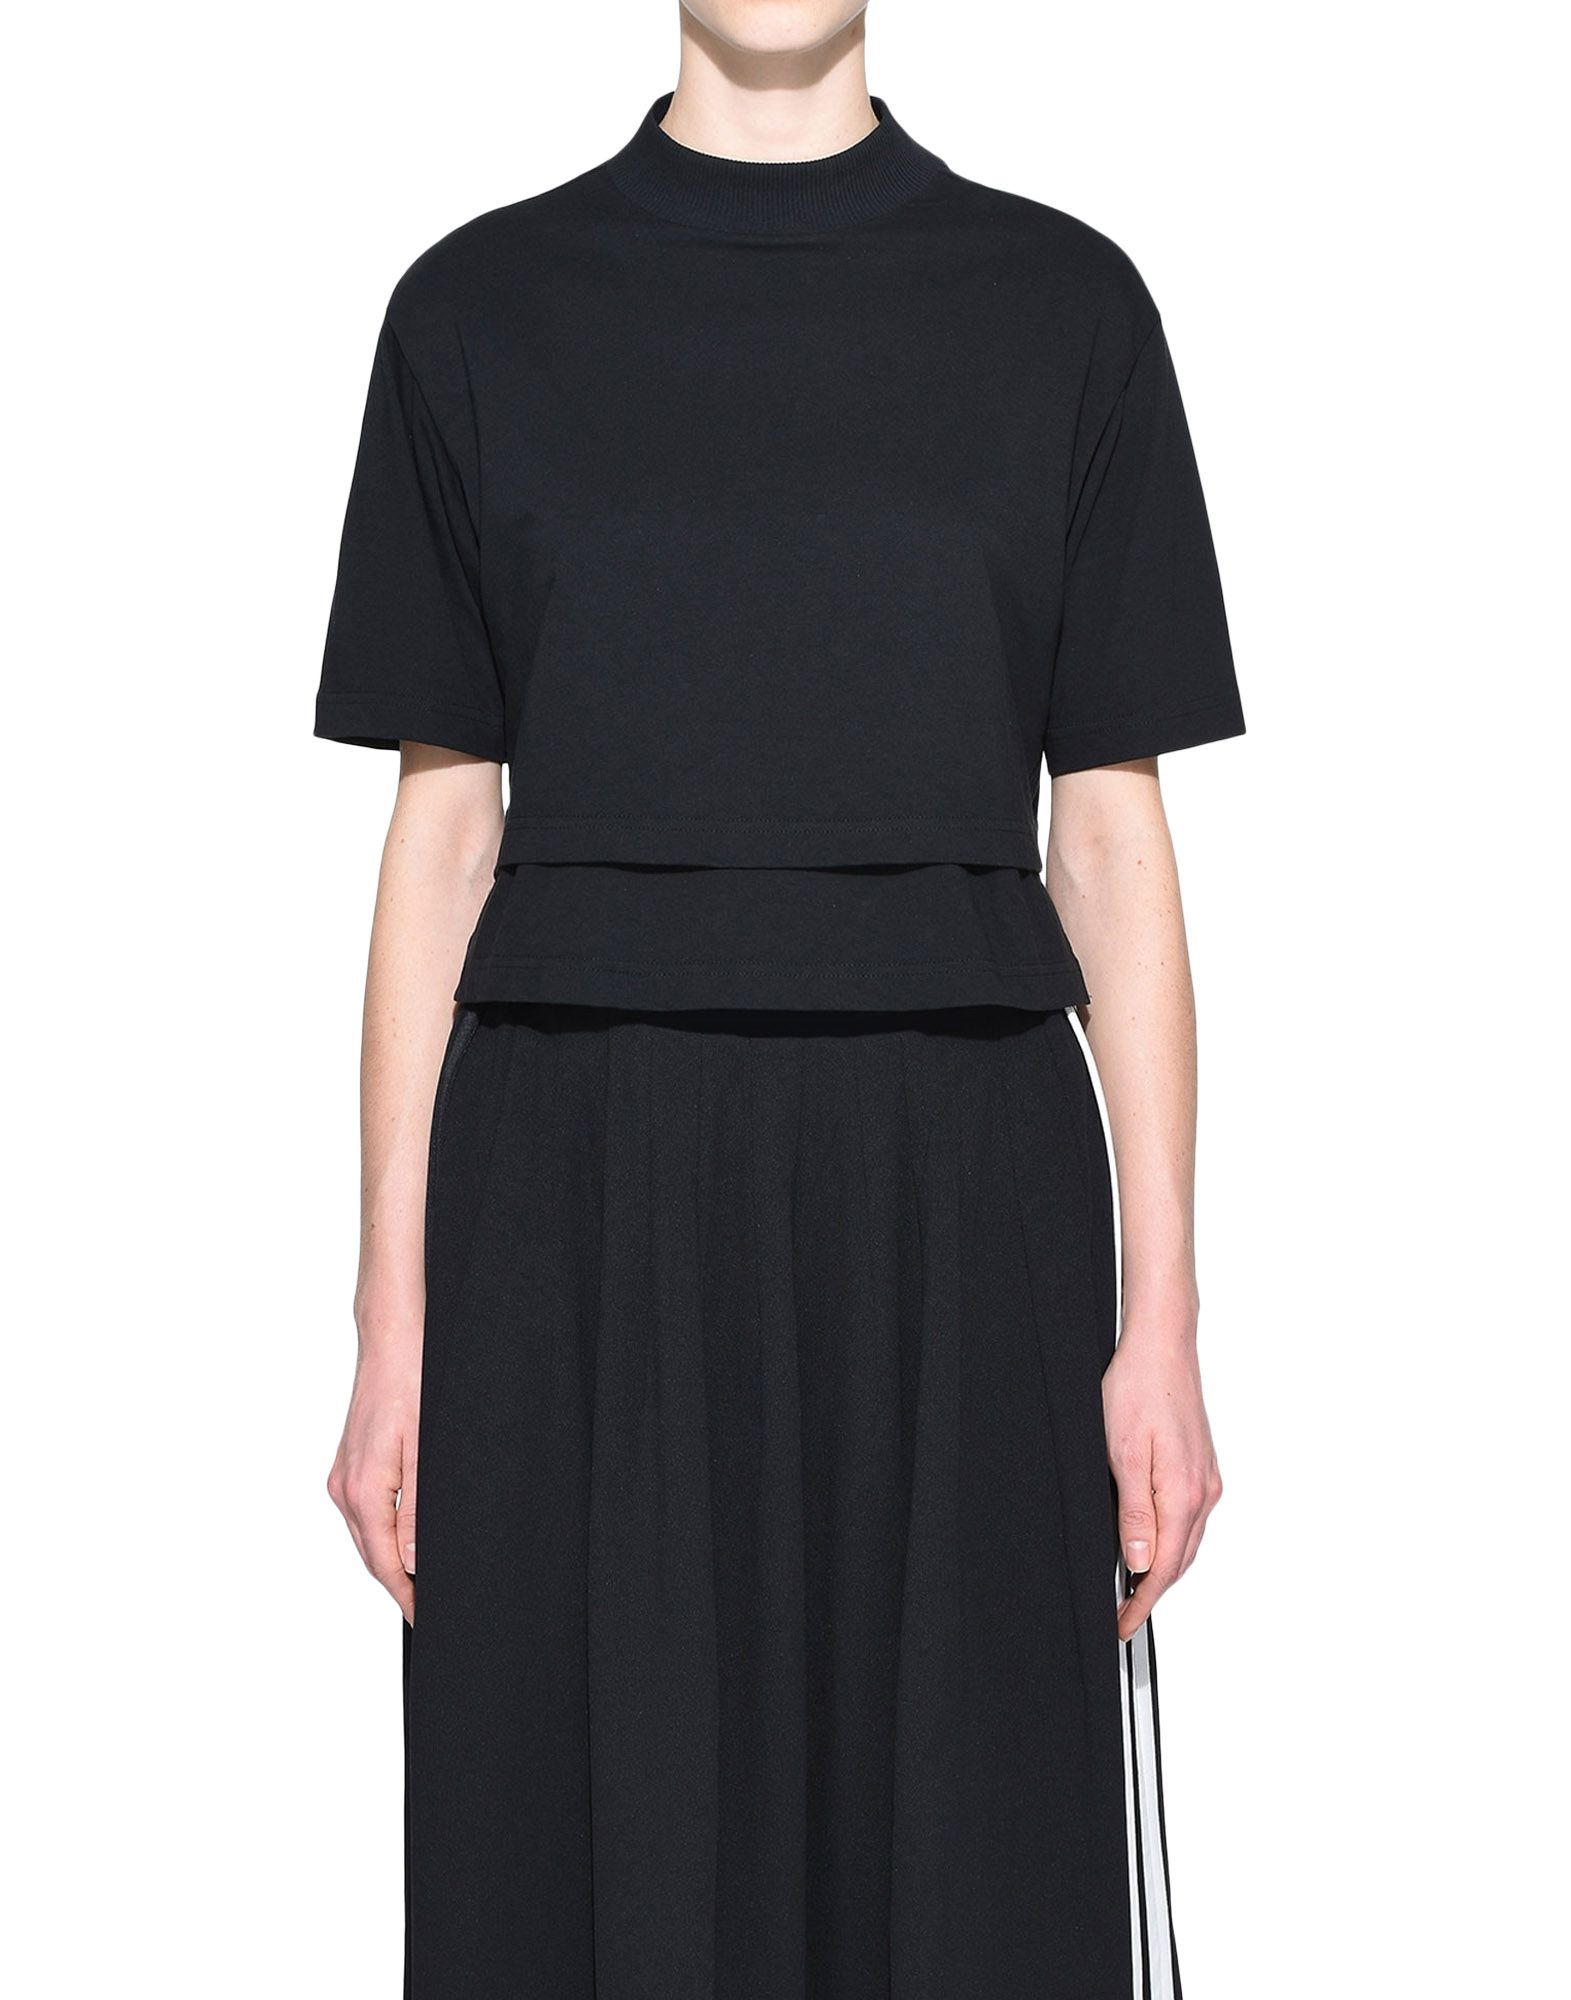 Y-3 Y-3 Stacked Logo Cropped Tee Short sleeve t-shirt Woman r